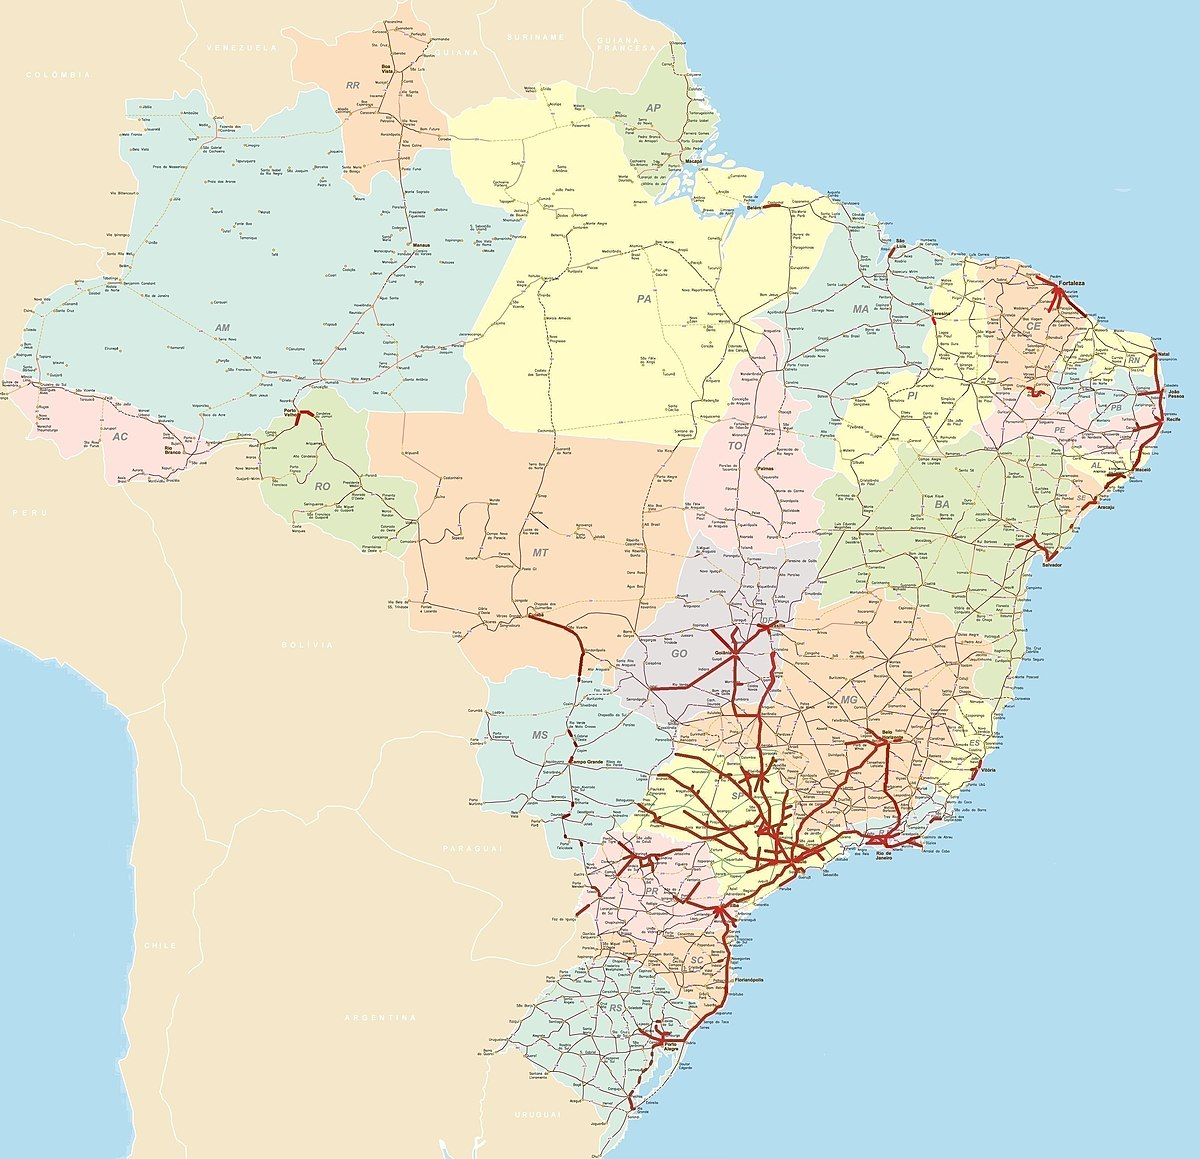 List of highways in Brazil - Wikipedia